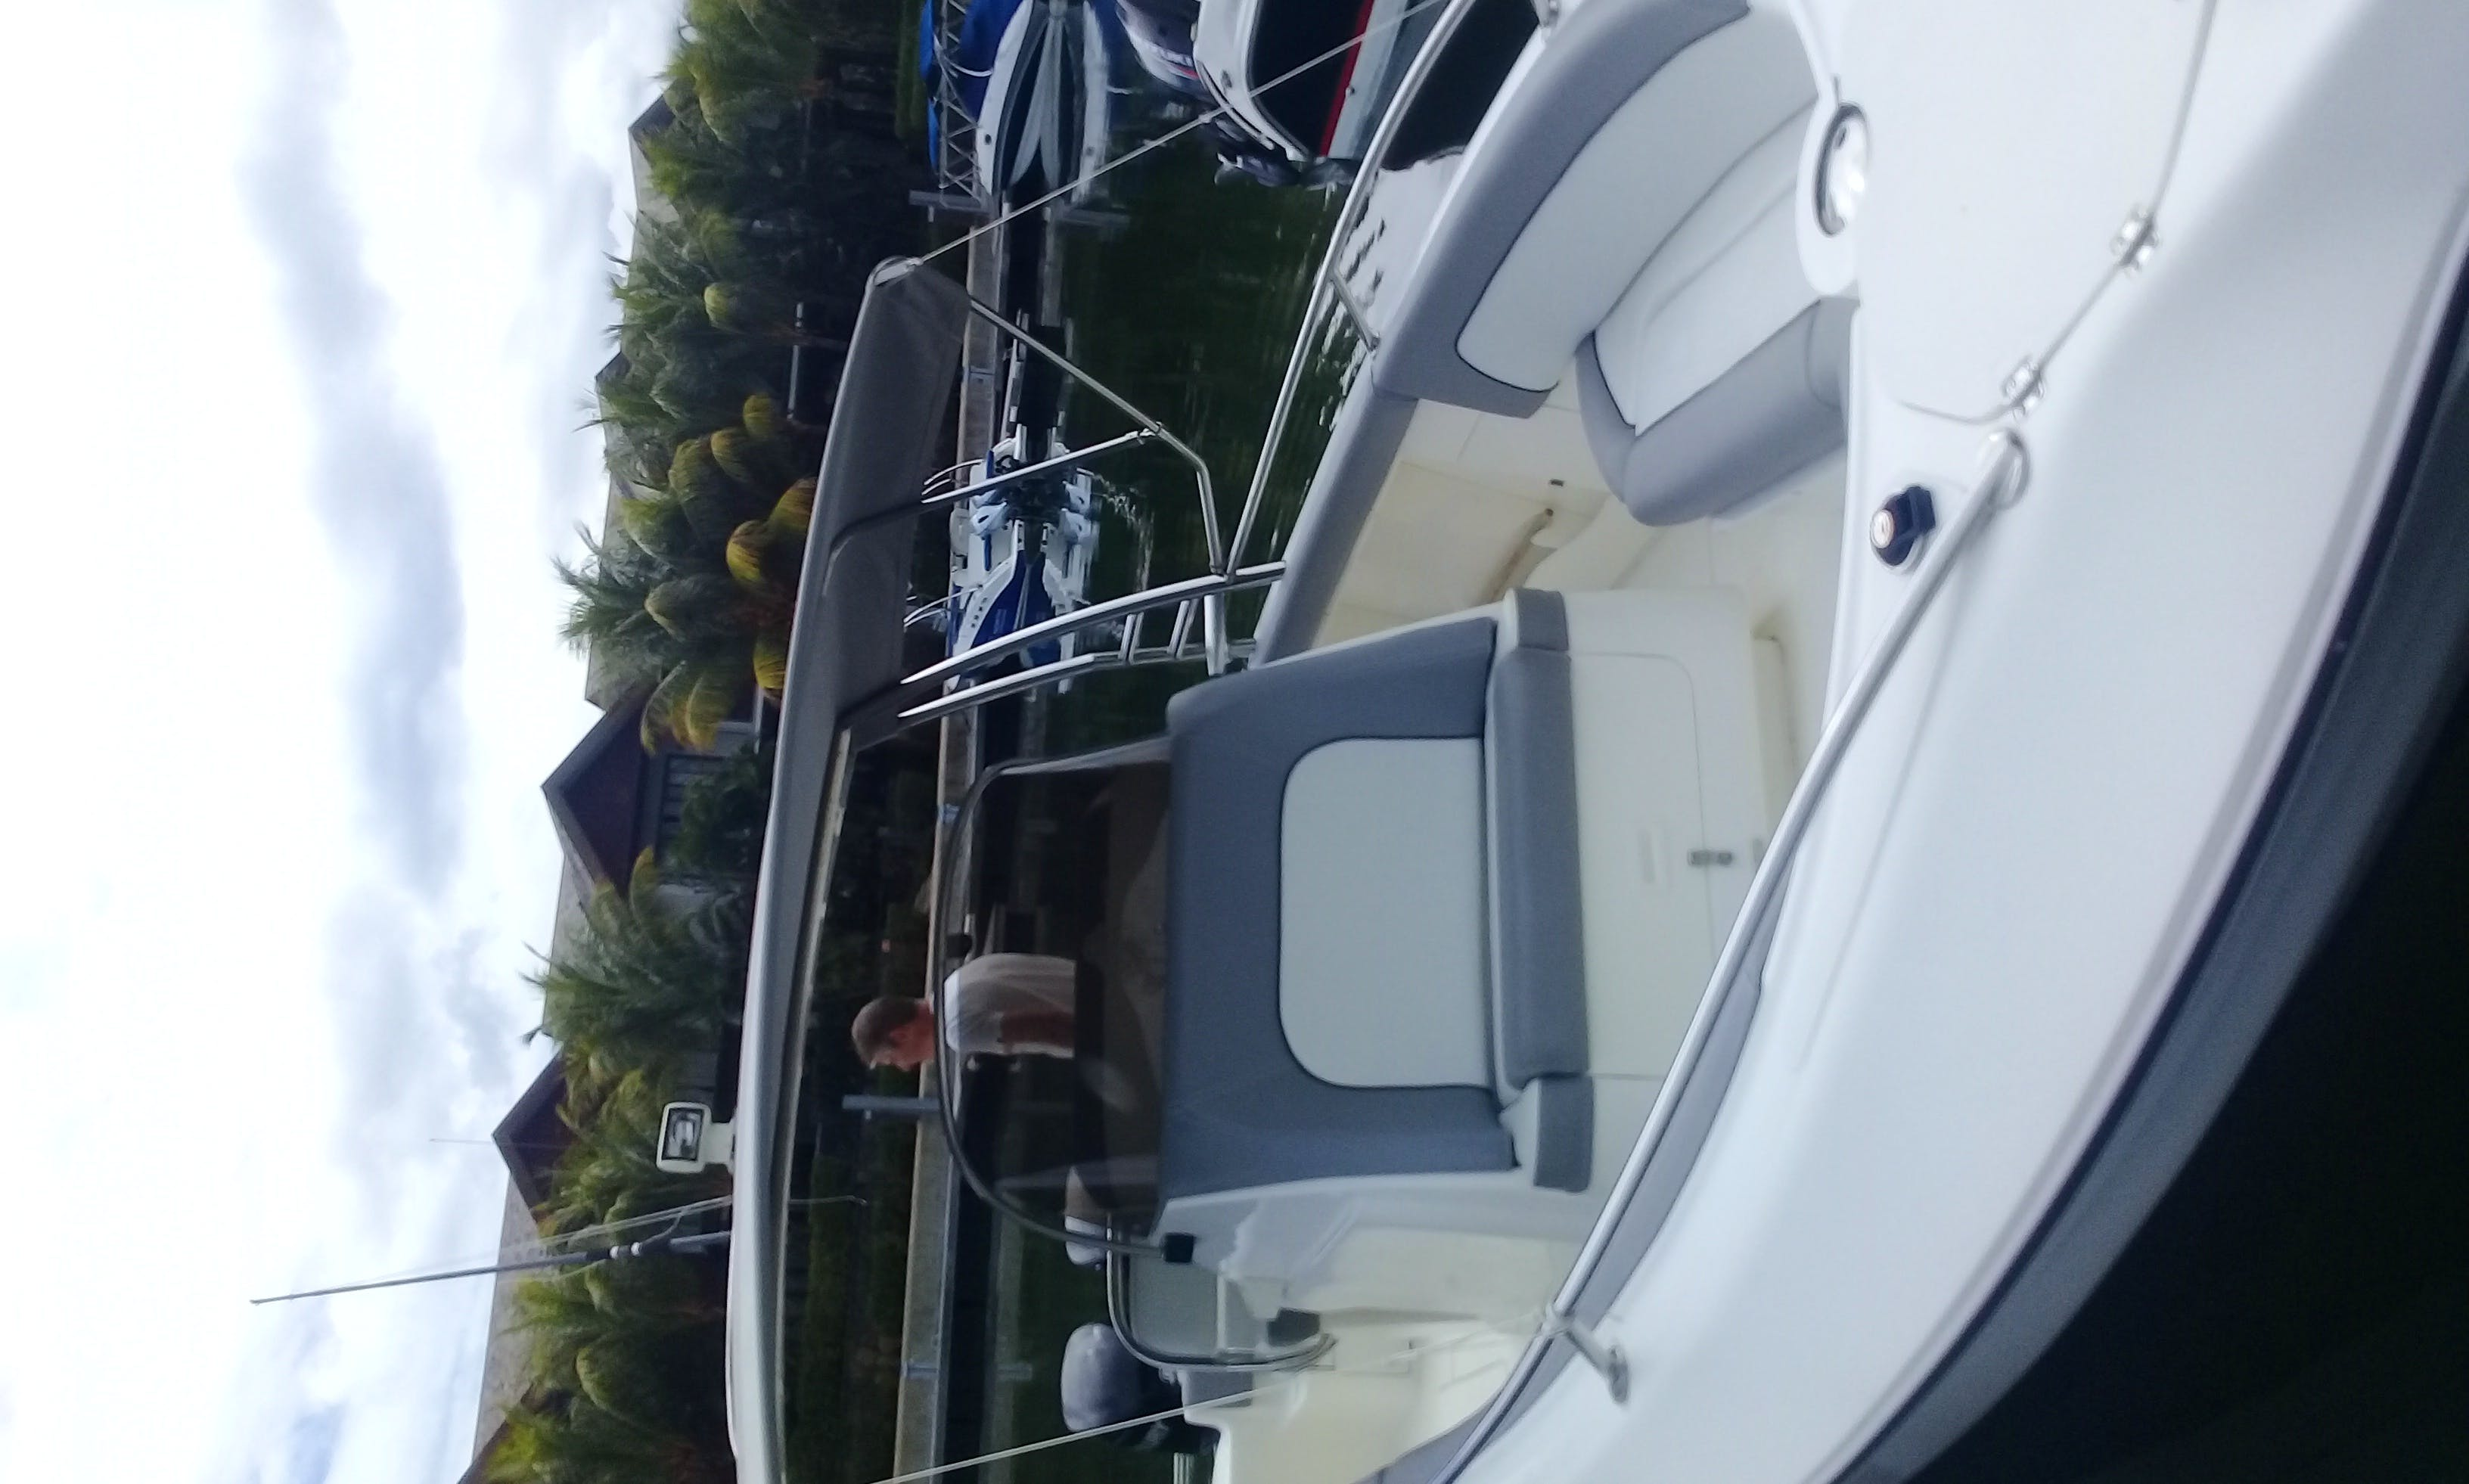 18ft Center Console Fishing Charter for 6 People in Albion, Mauritius